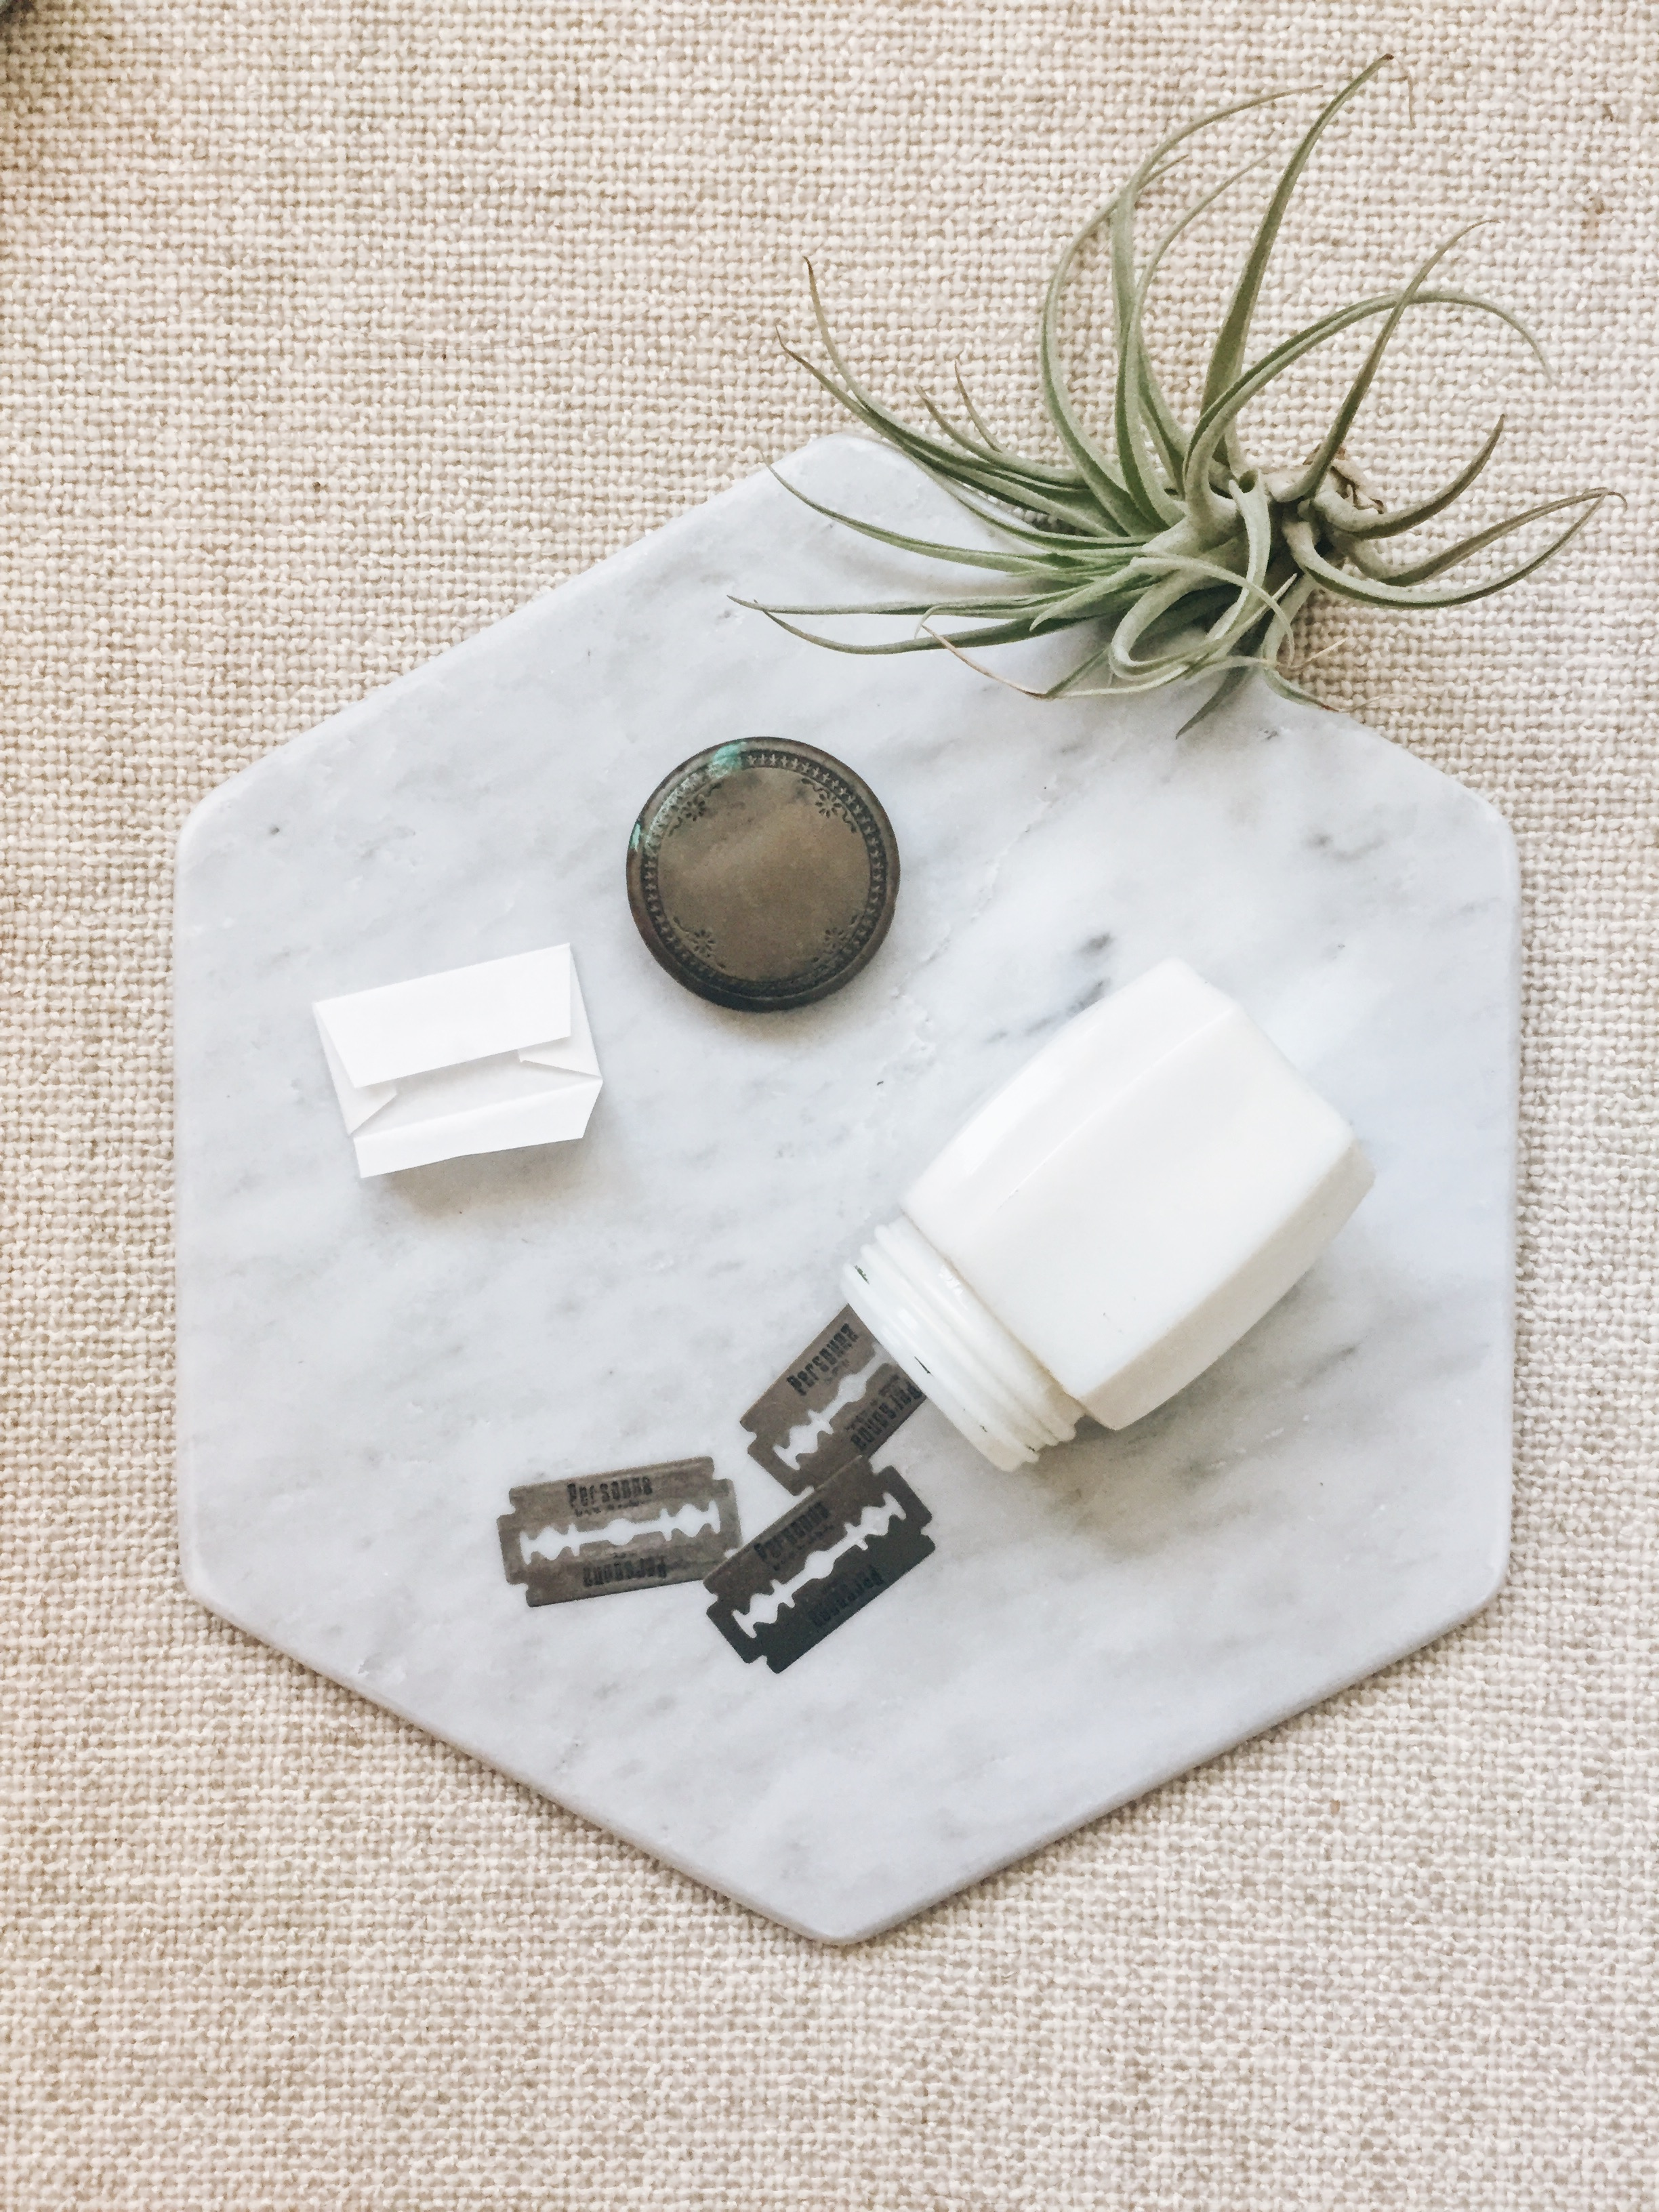 You'll know it's time to change your blade when shaving brings along a flurry of annoying tiny cuts. Each new razor is packaged in a paper envelope that is easily recyclable.